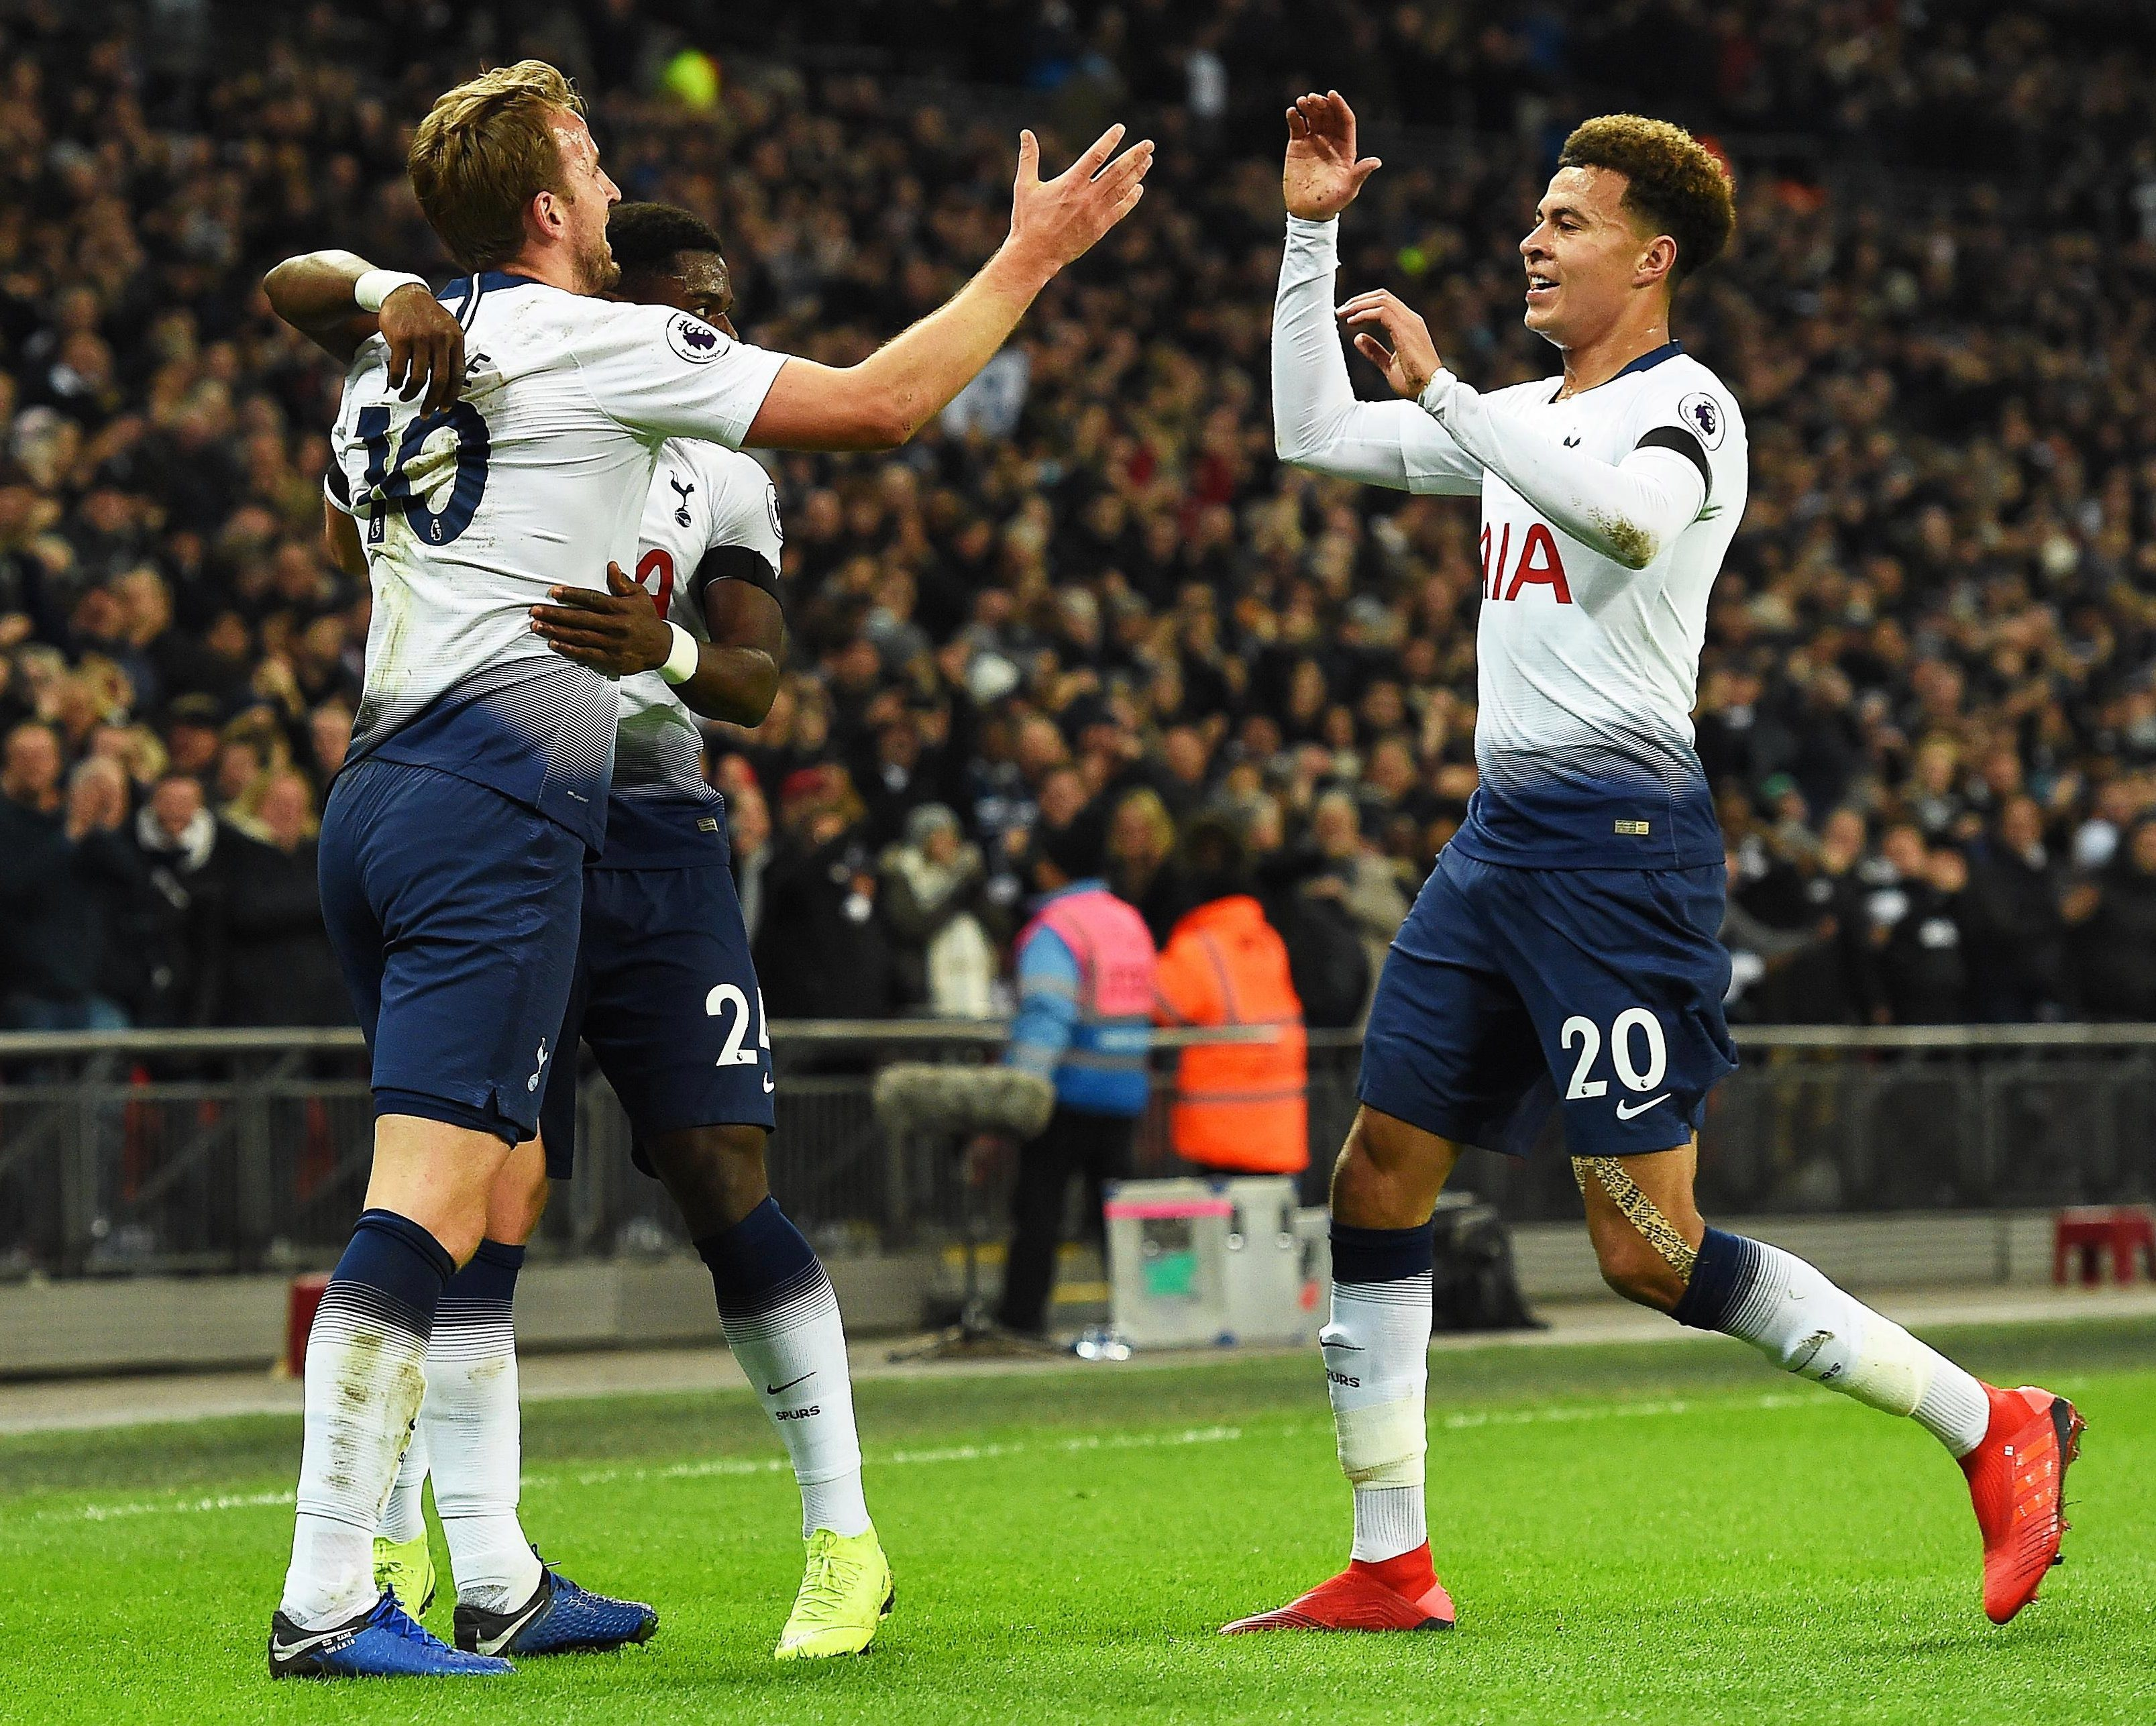 Goals from Dele Alli and Harry Kane meant Spurs led 2-0 at half-time